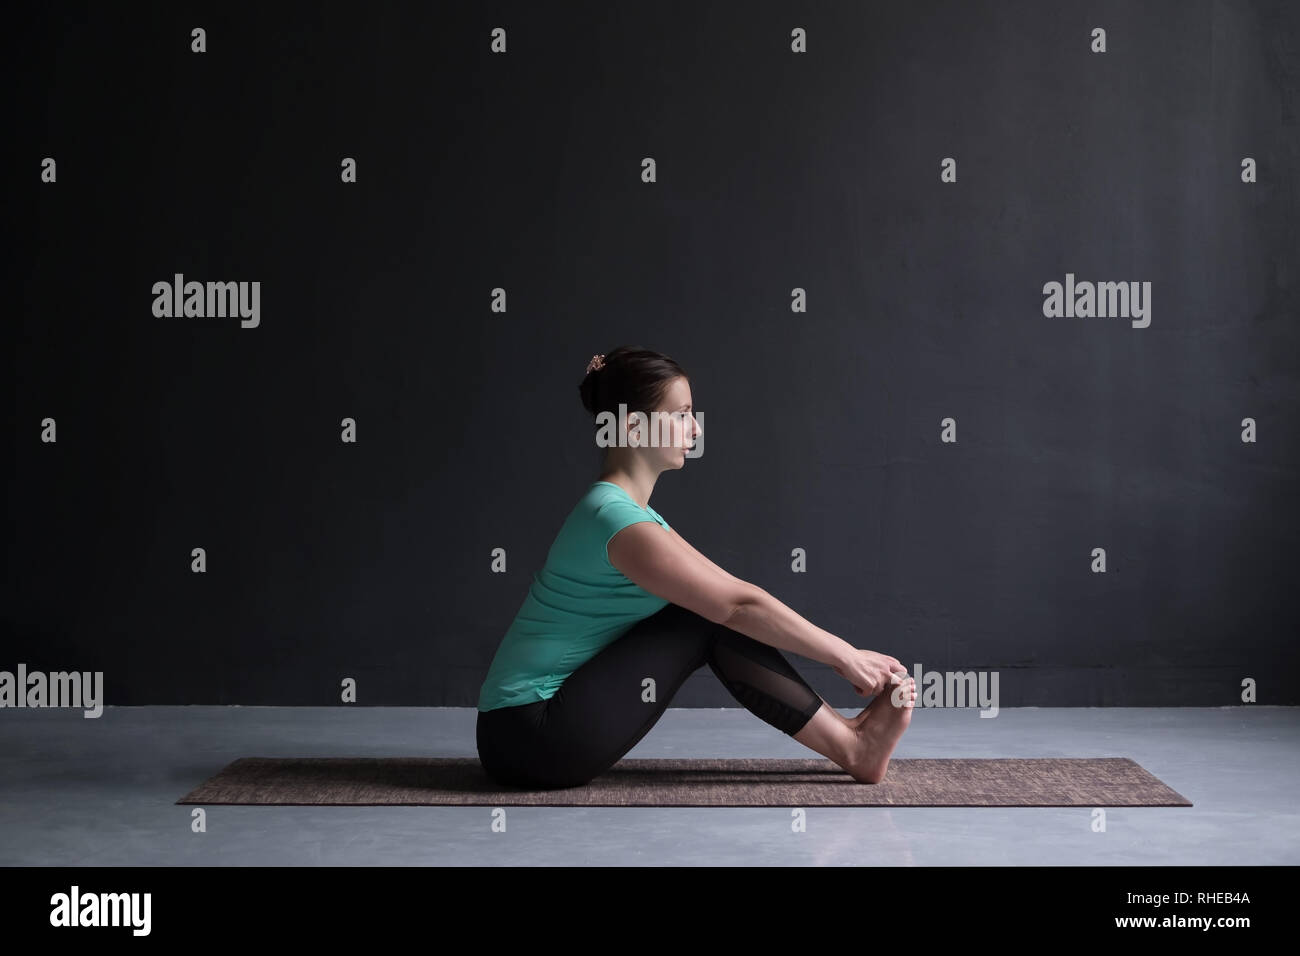 woman practicing yoga, doing Seated forward bend pose, using hands. - Stock Image